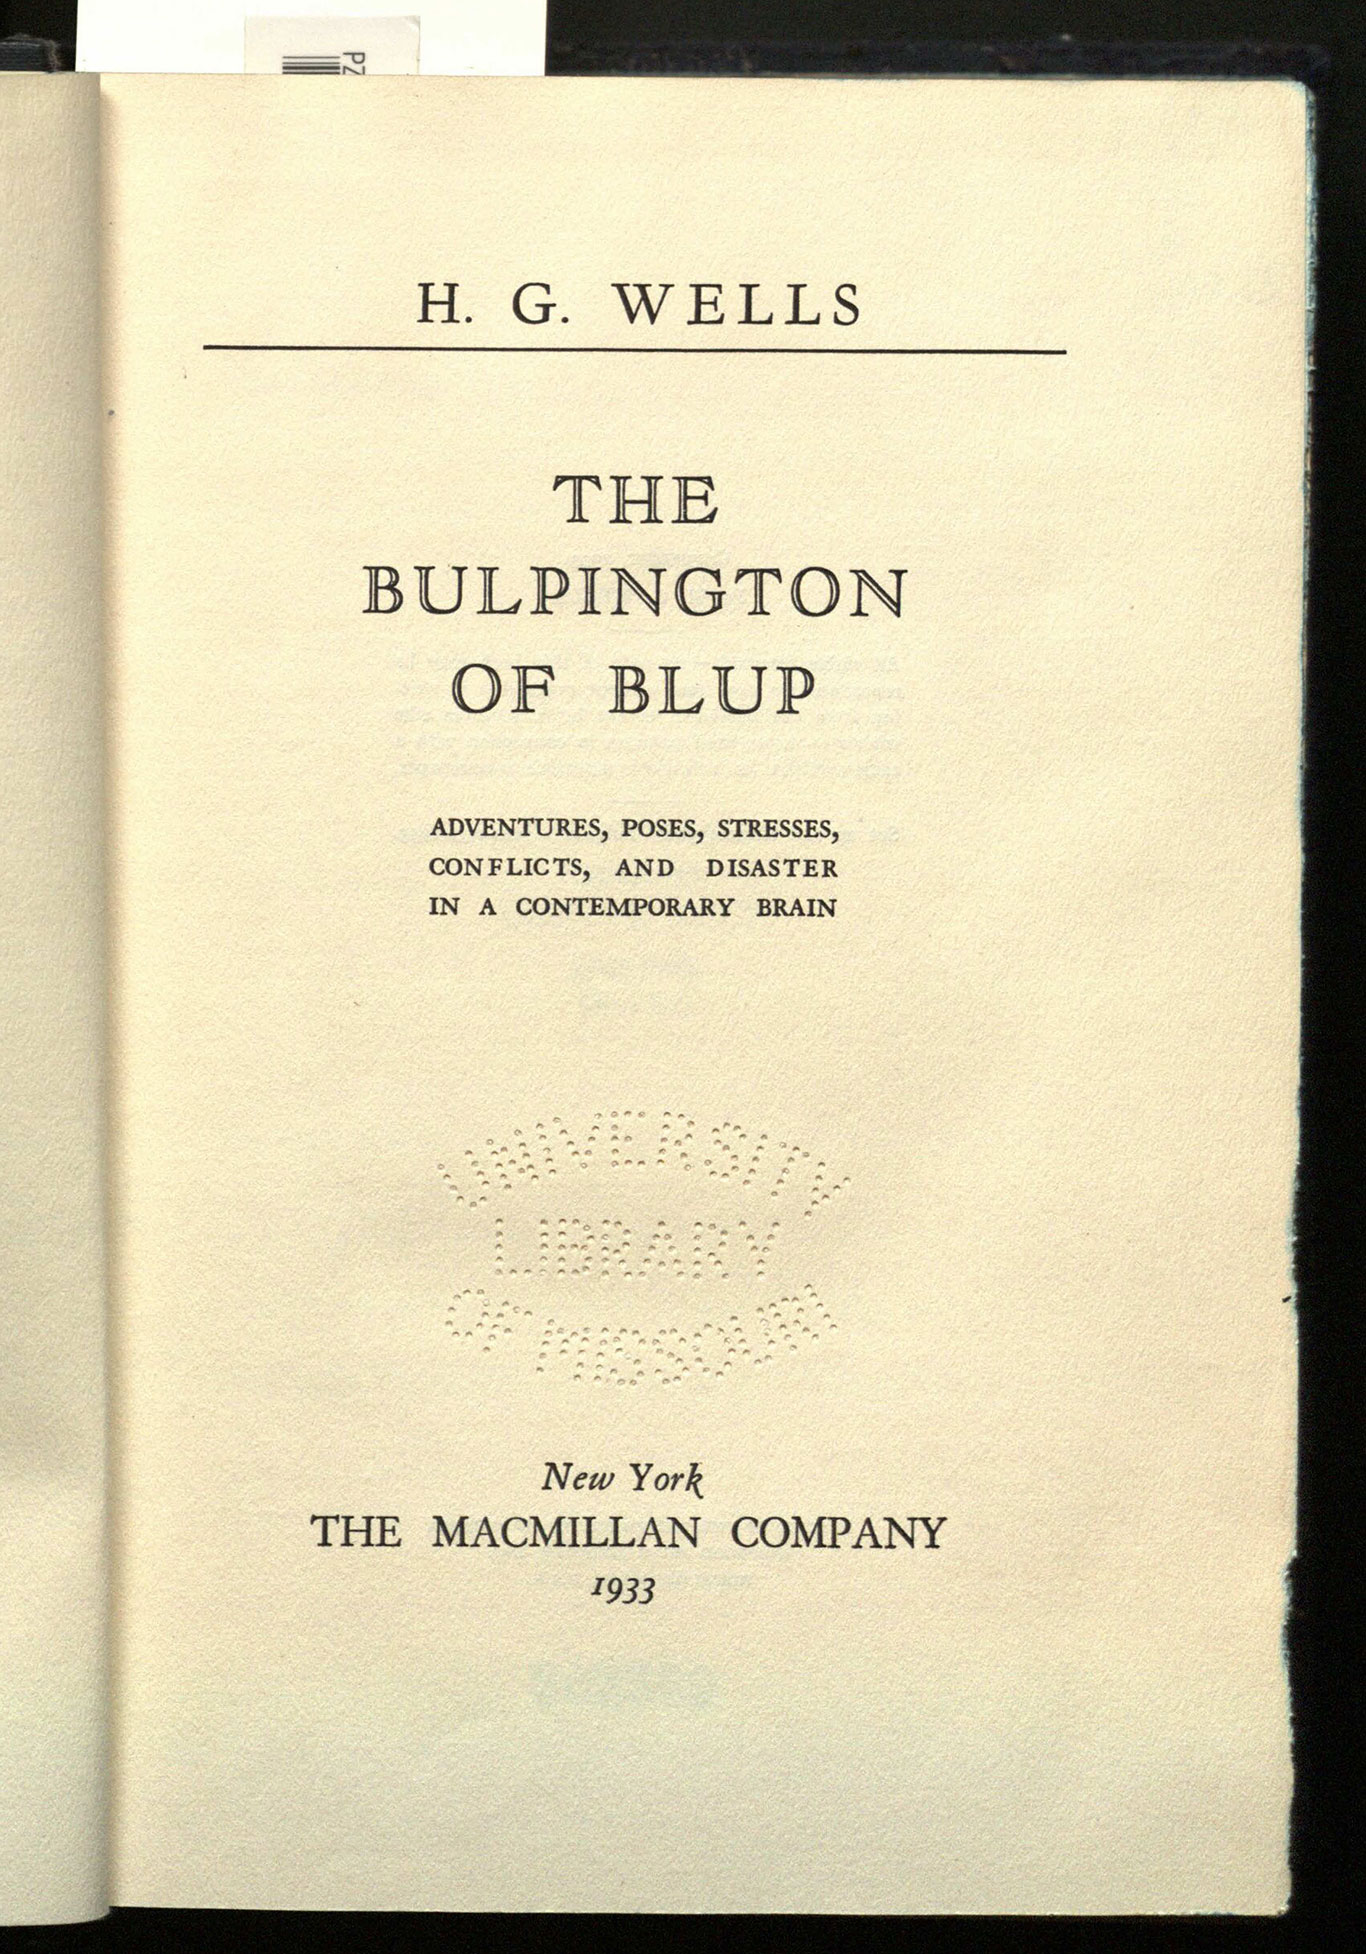 The Bulpington of Blup ; adventures, poses, stresses, conflicts, and disaster in a contemporary brain.